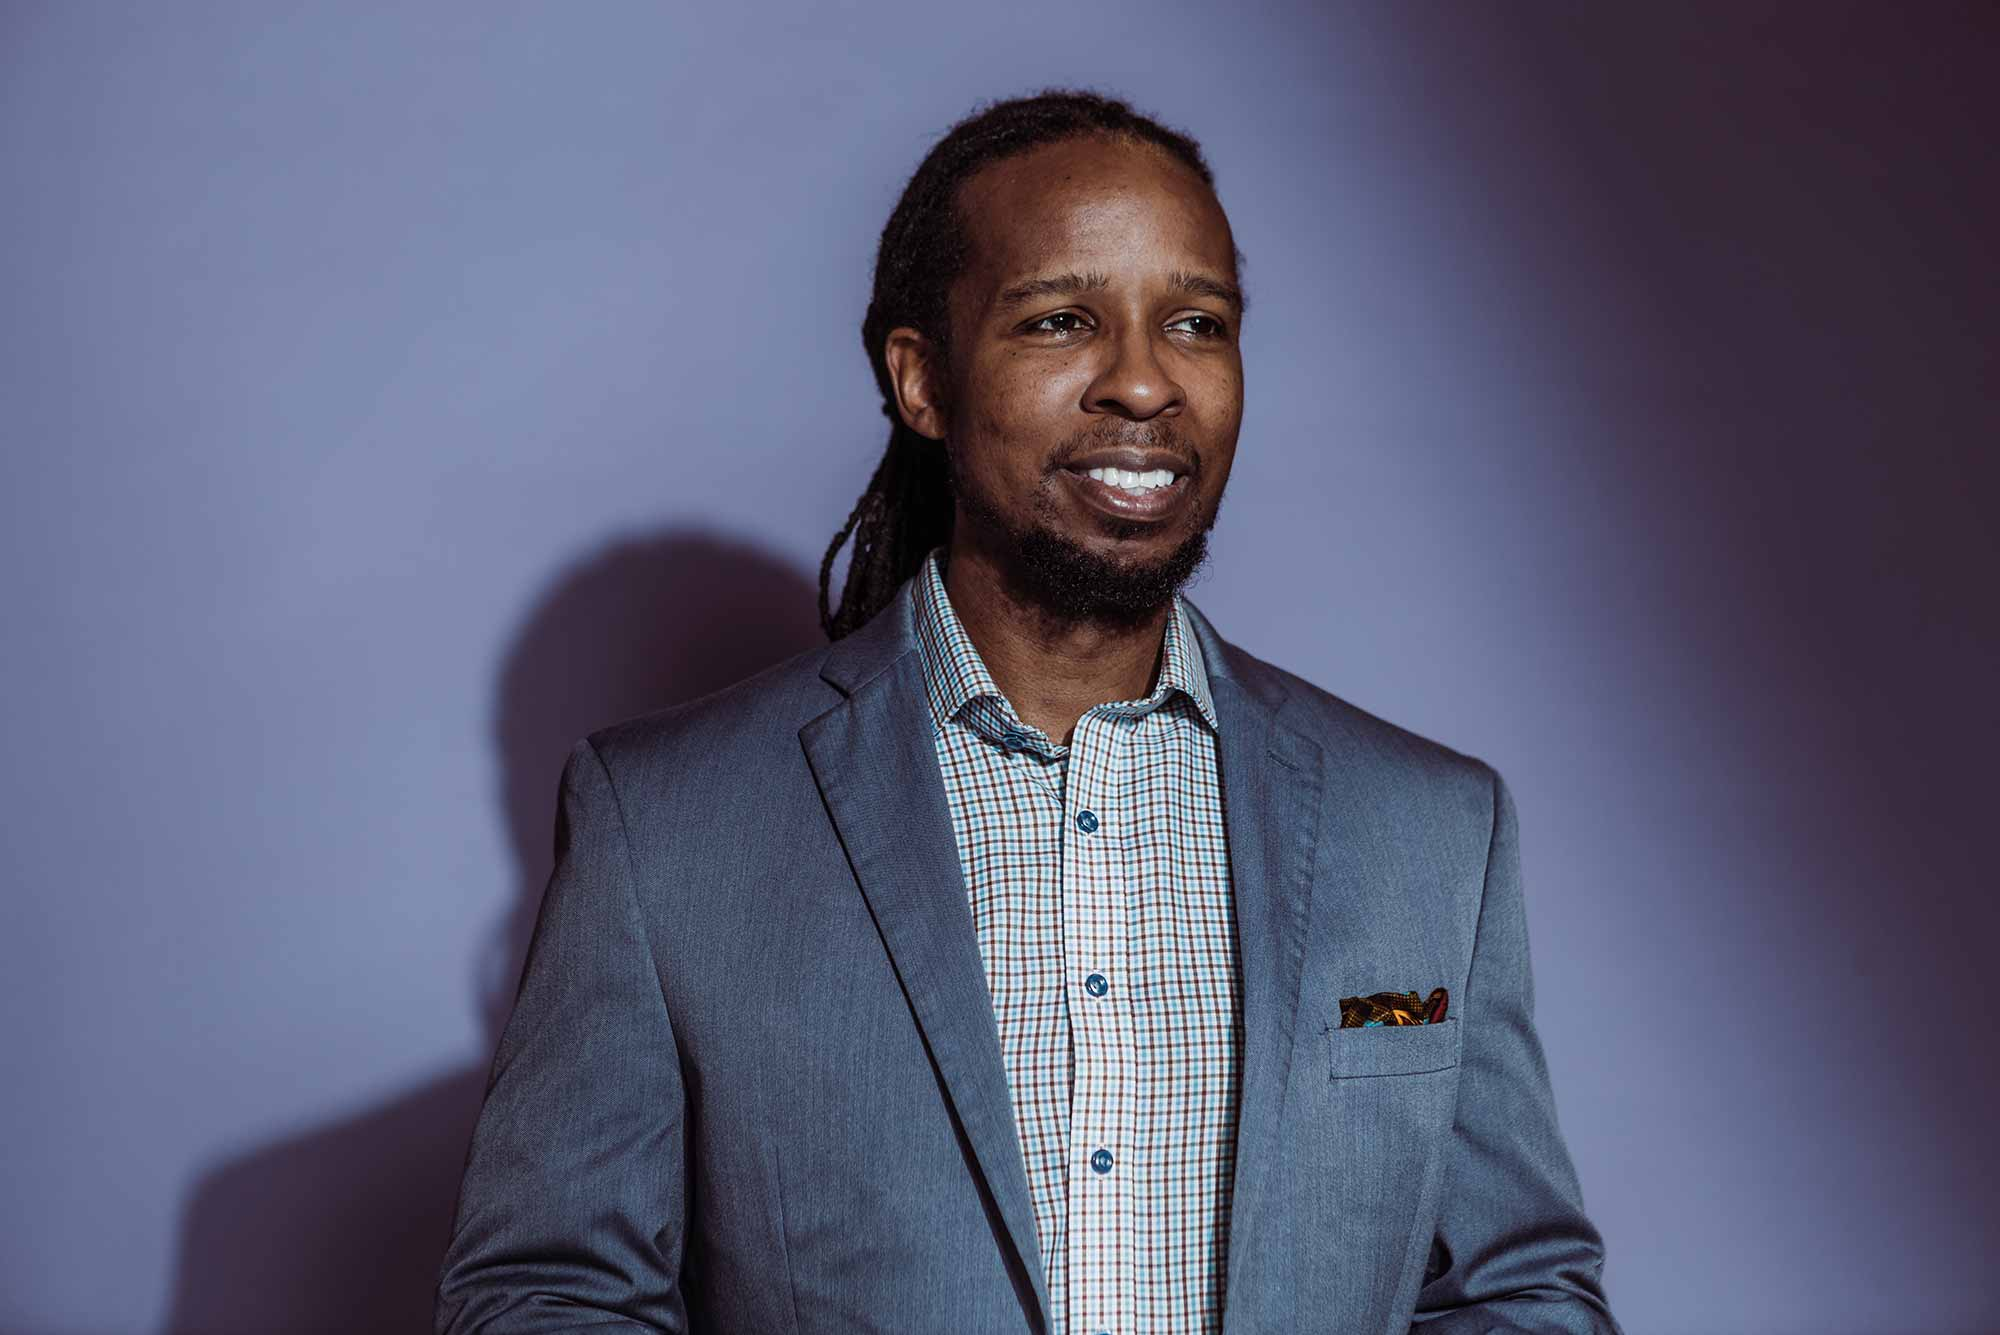 Portrait of Ibram X. Kendi standing in front of a lavendar background